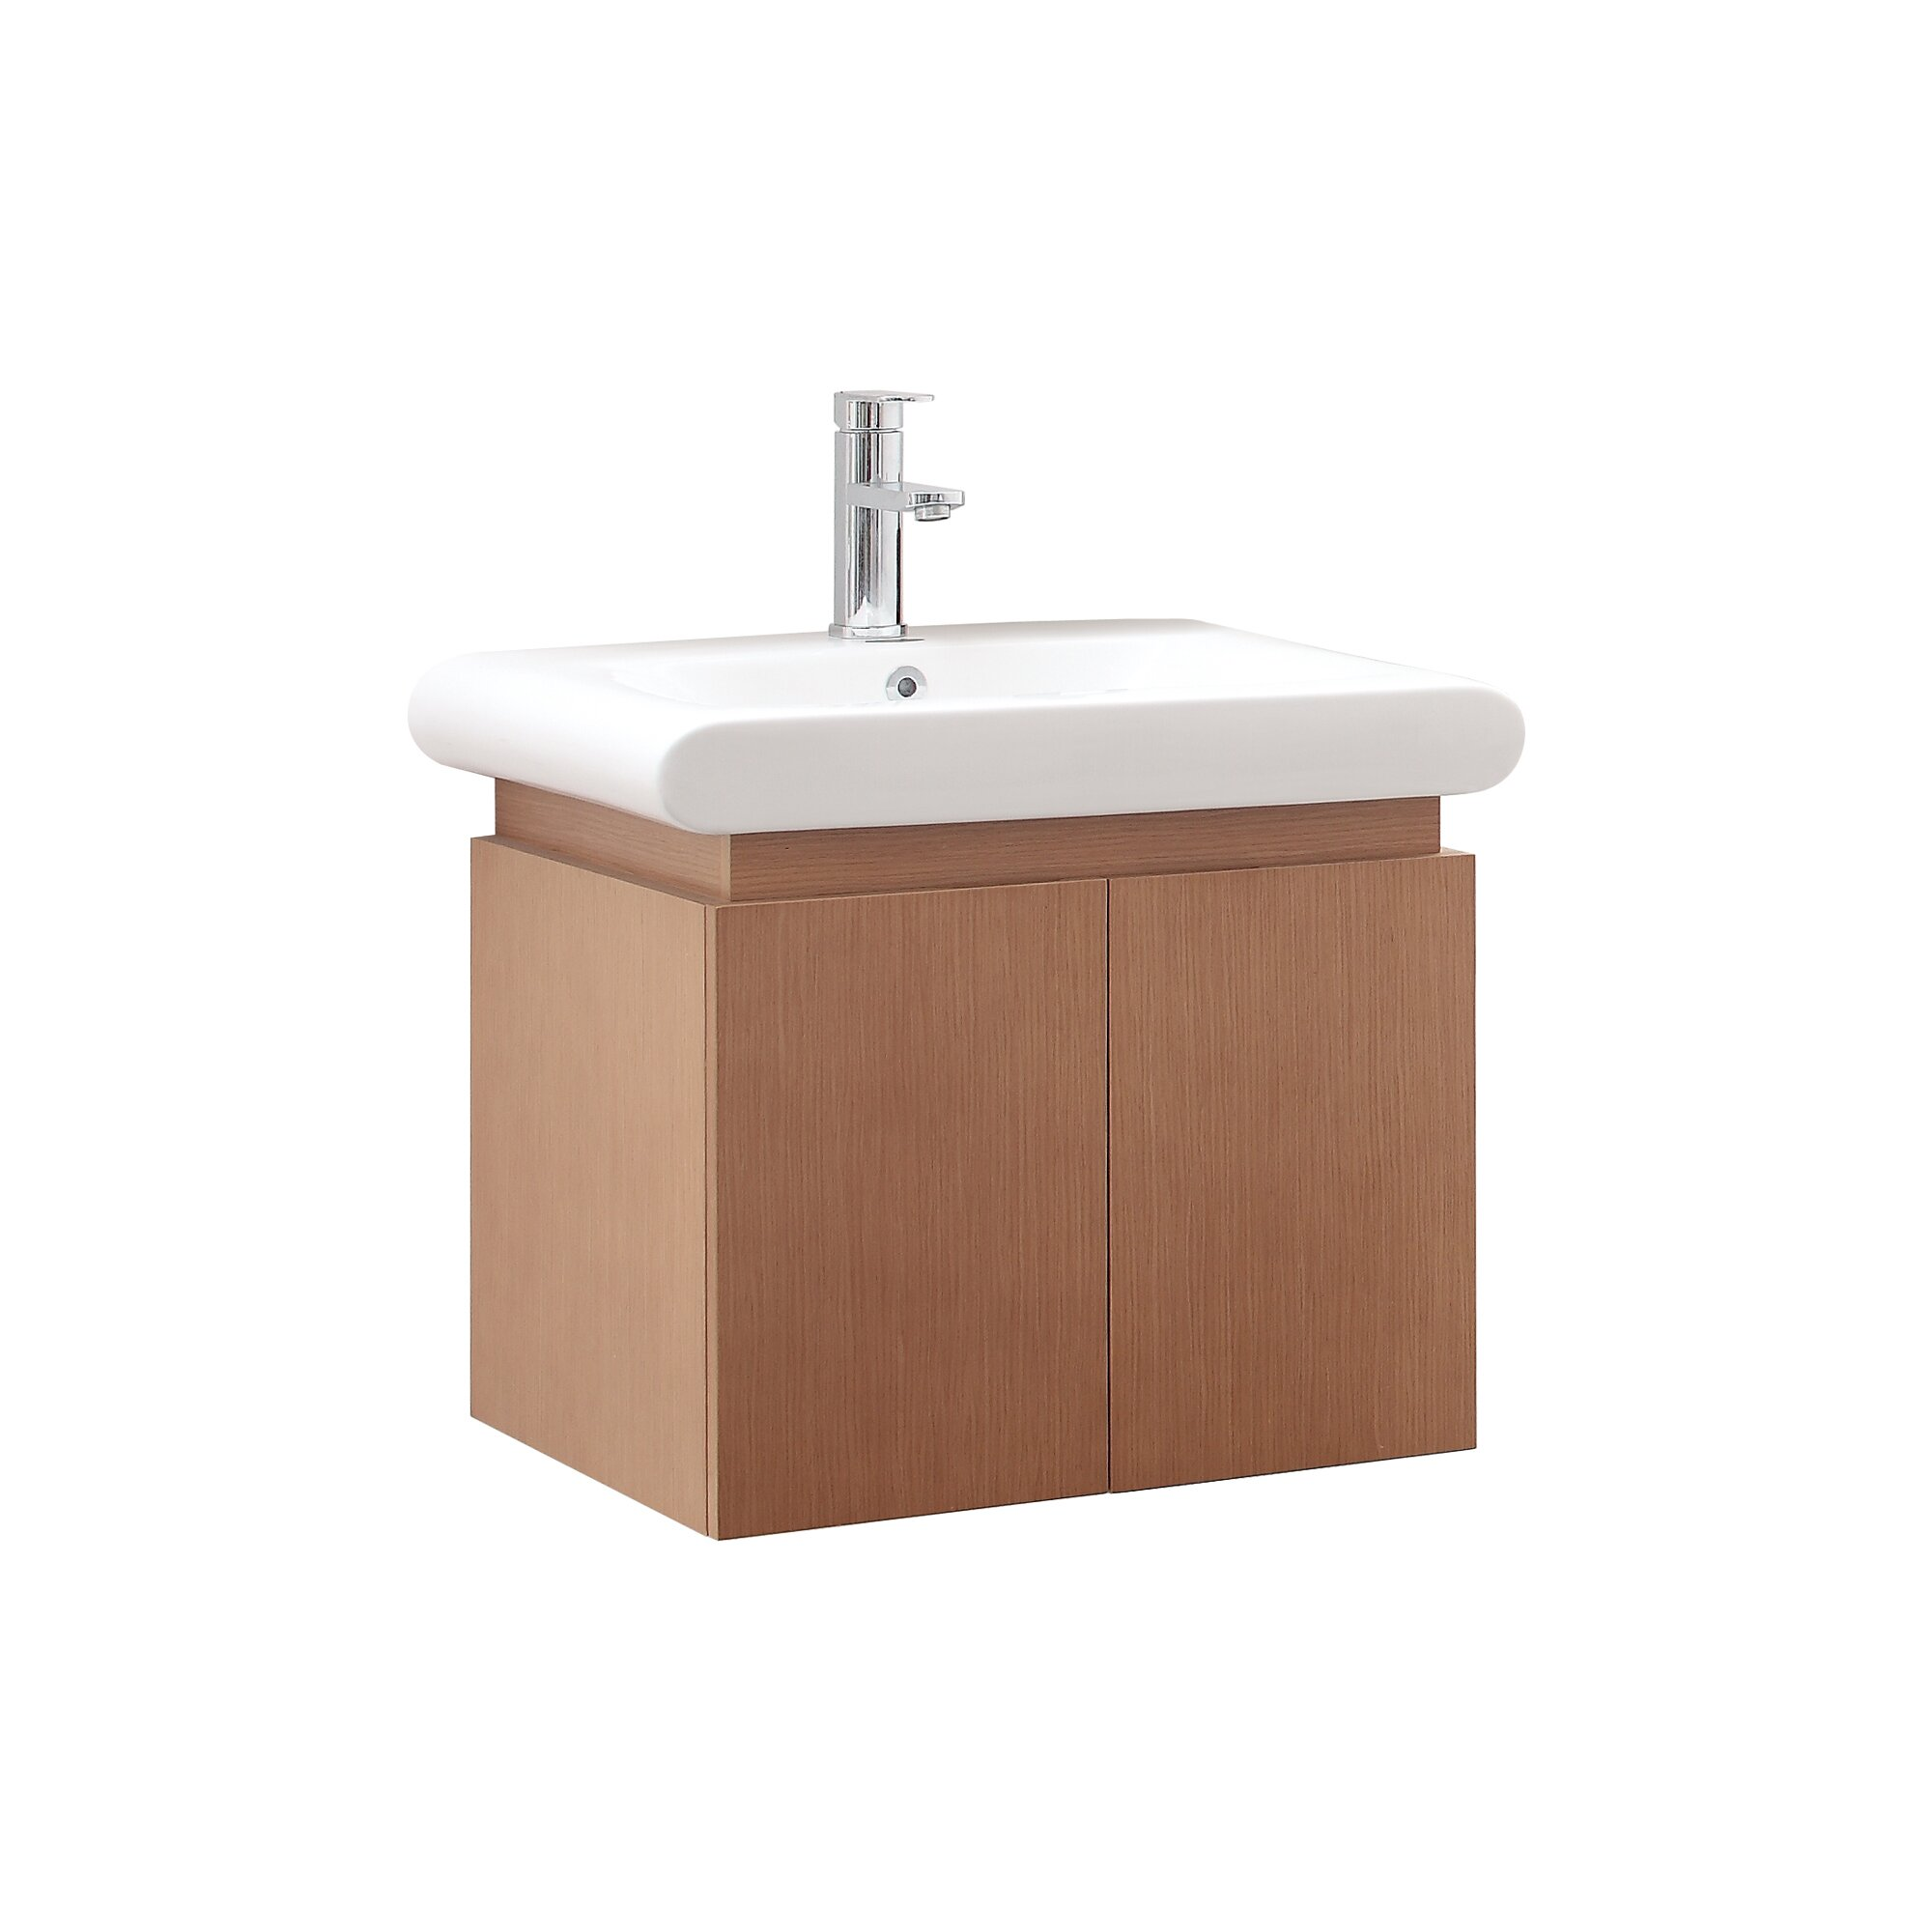 Avanity Elle 24 Single Wall Mounted Bathroom Vanity Set